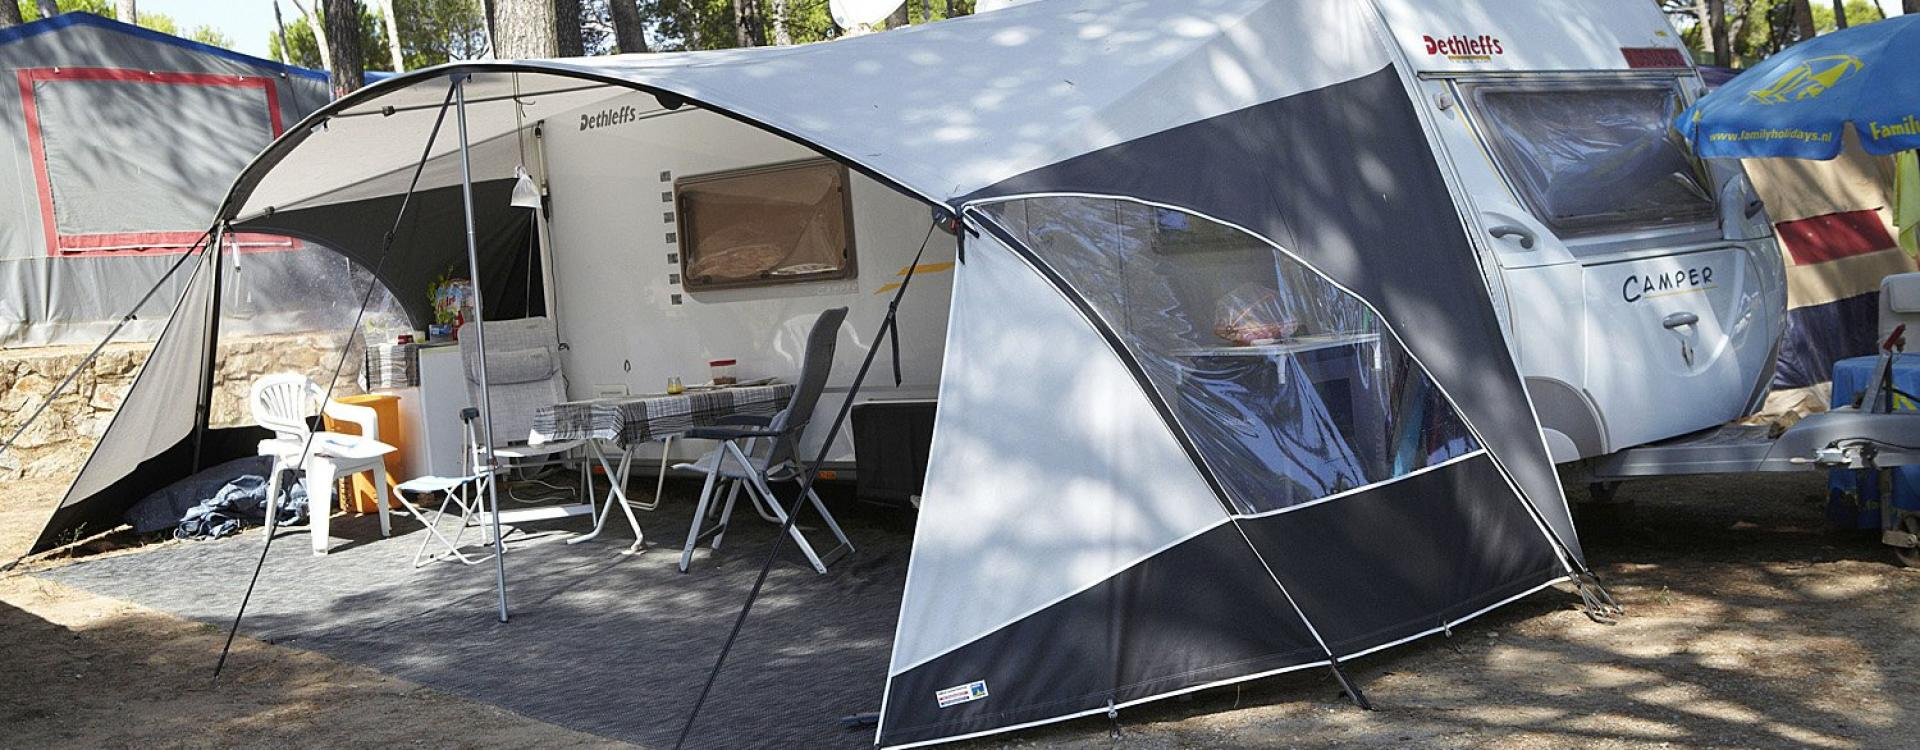 Caravan with tent in Camping Interpals - Spain